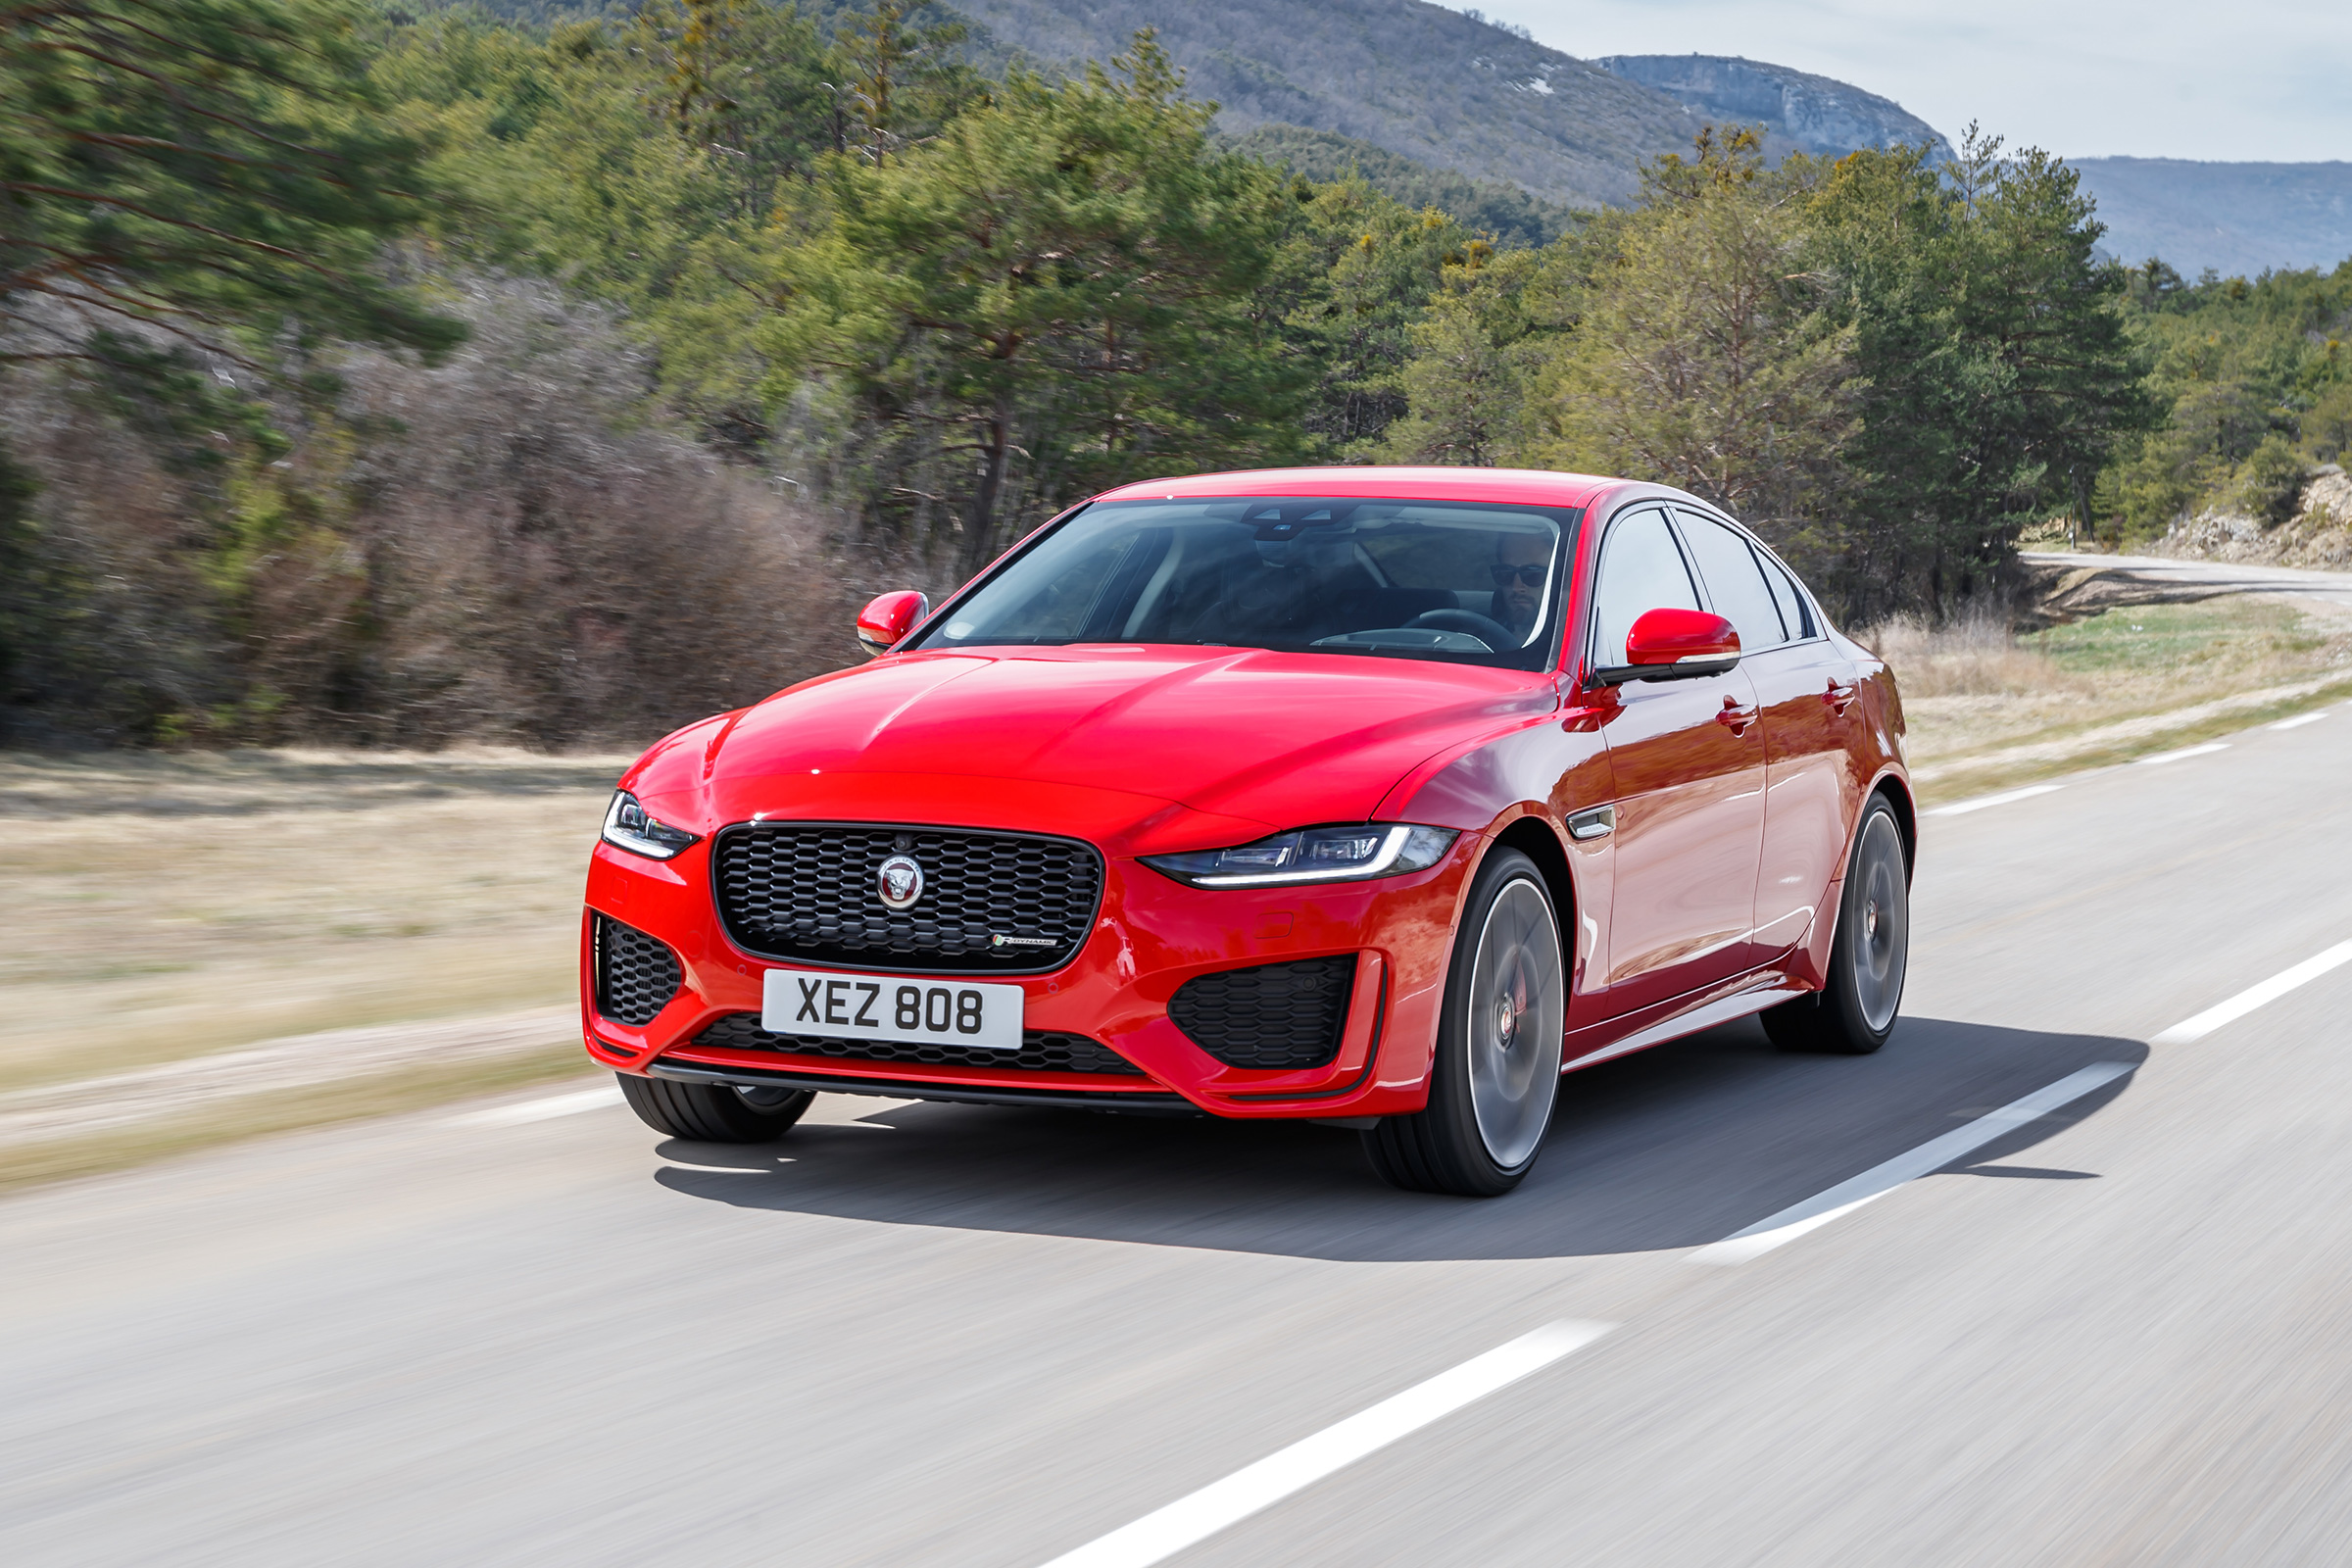 Jaguar XE P300 R-Dynamics S AWD review - how does it compare to the Giulia Veloce? | Evo